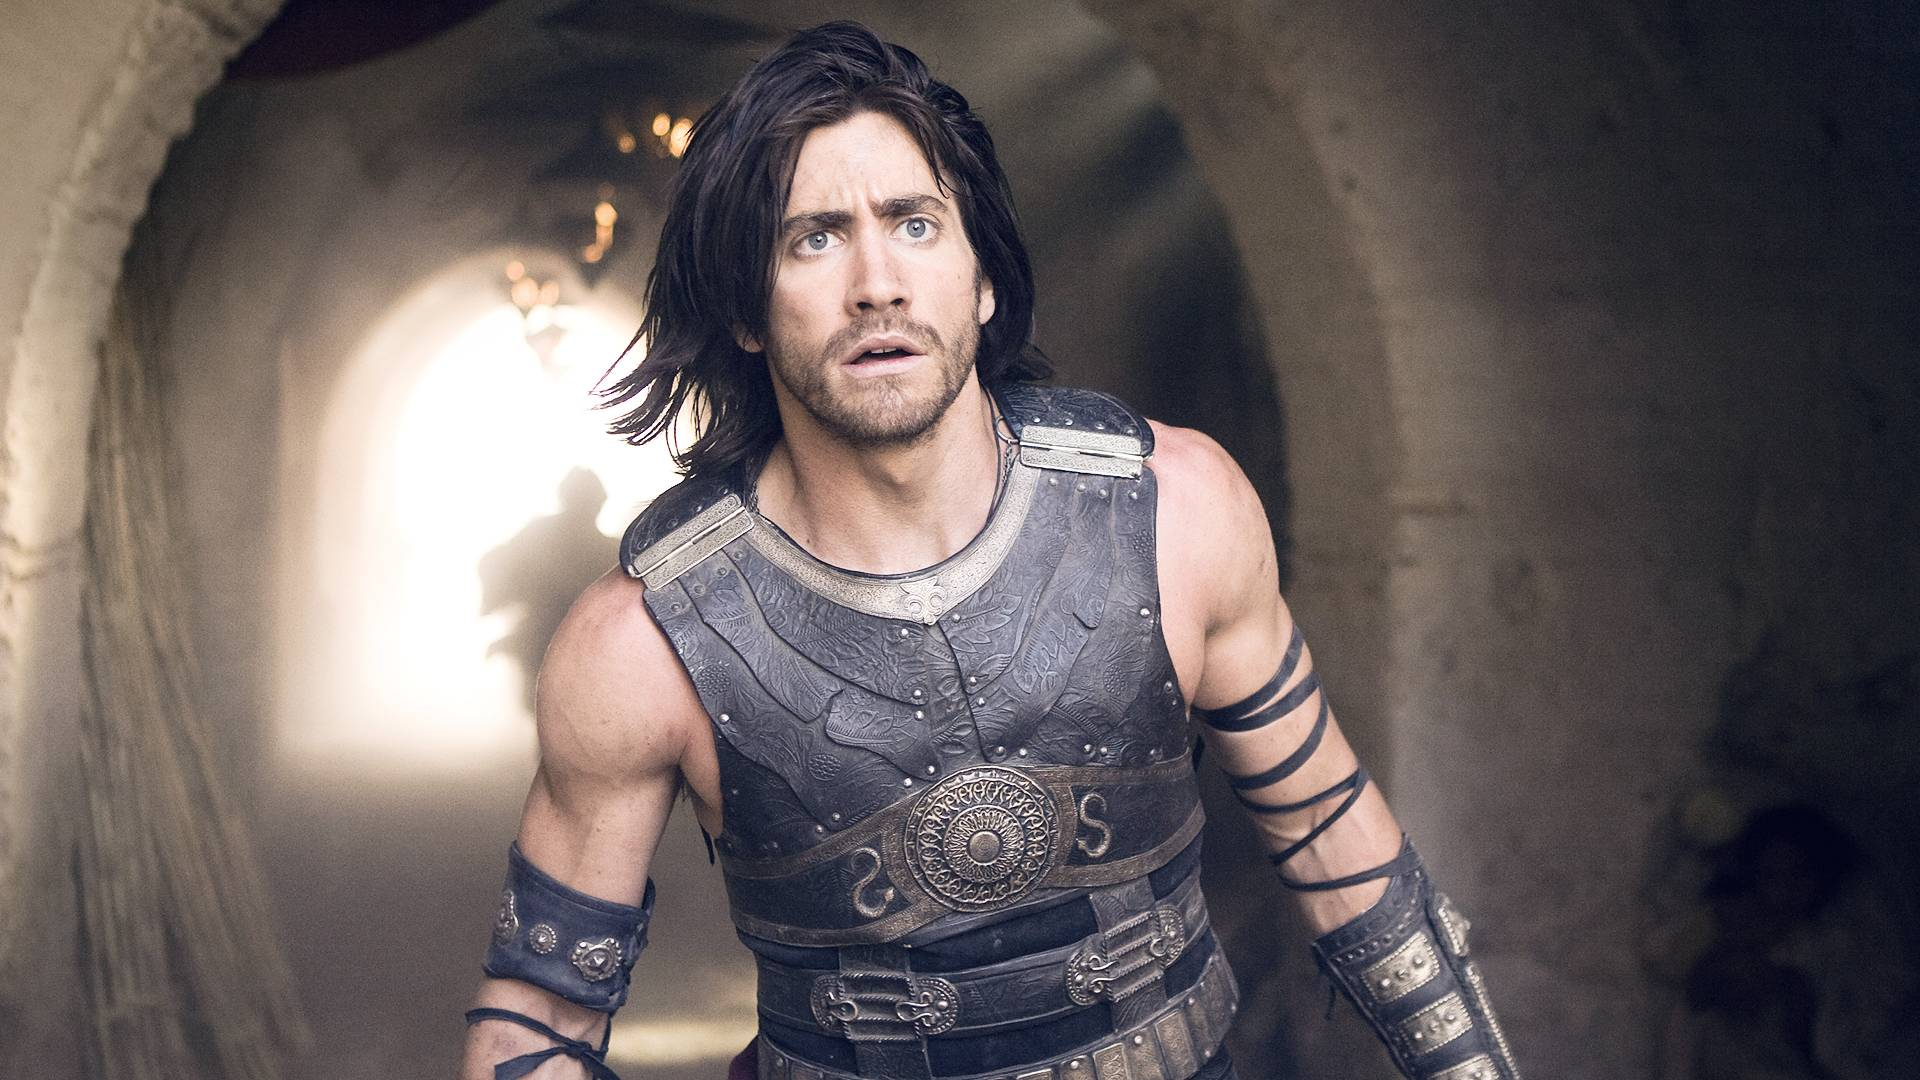 Prince Of Persia Movie Wallpapers Wallpaper Cave